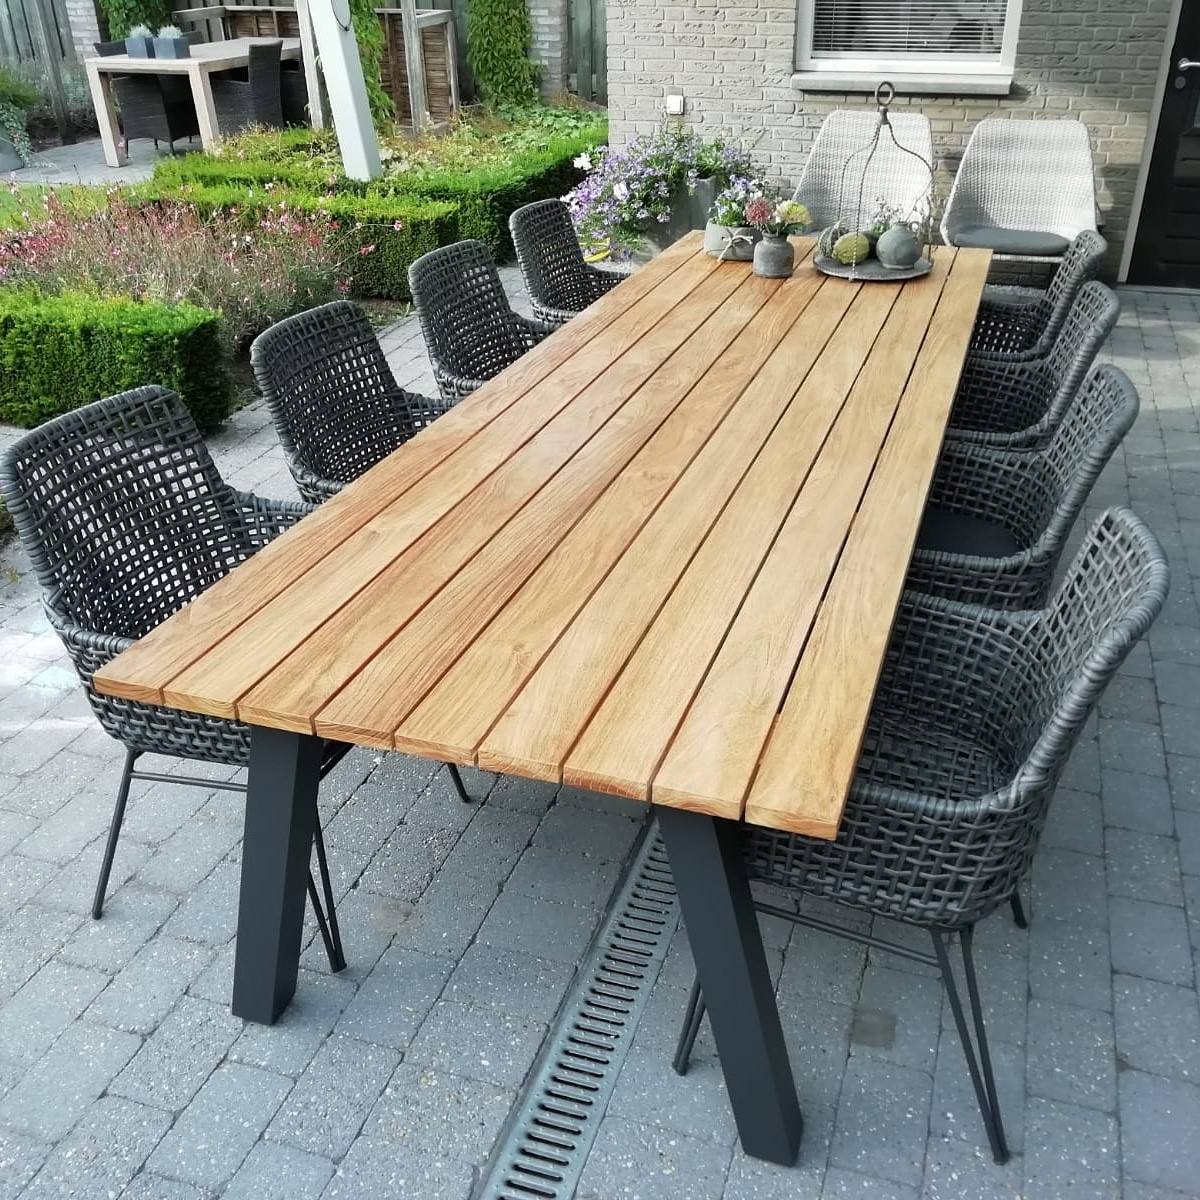 Tuintafel Industriele look